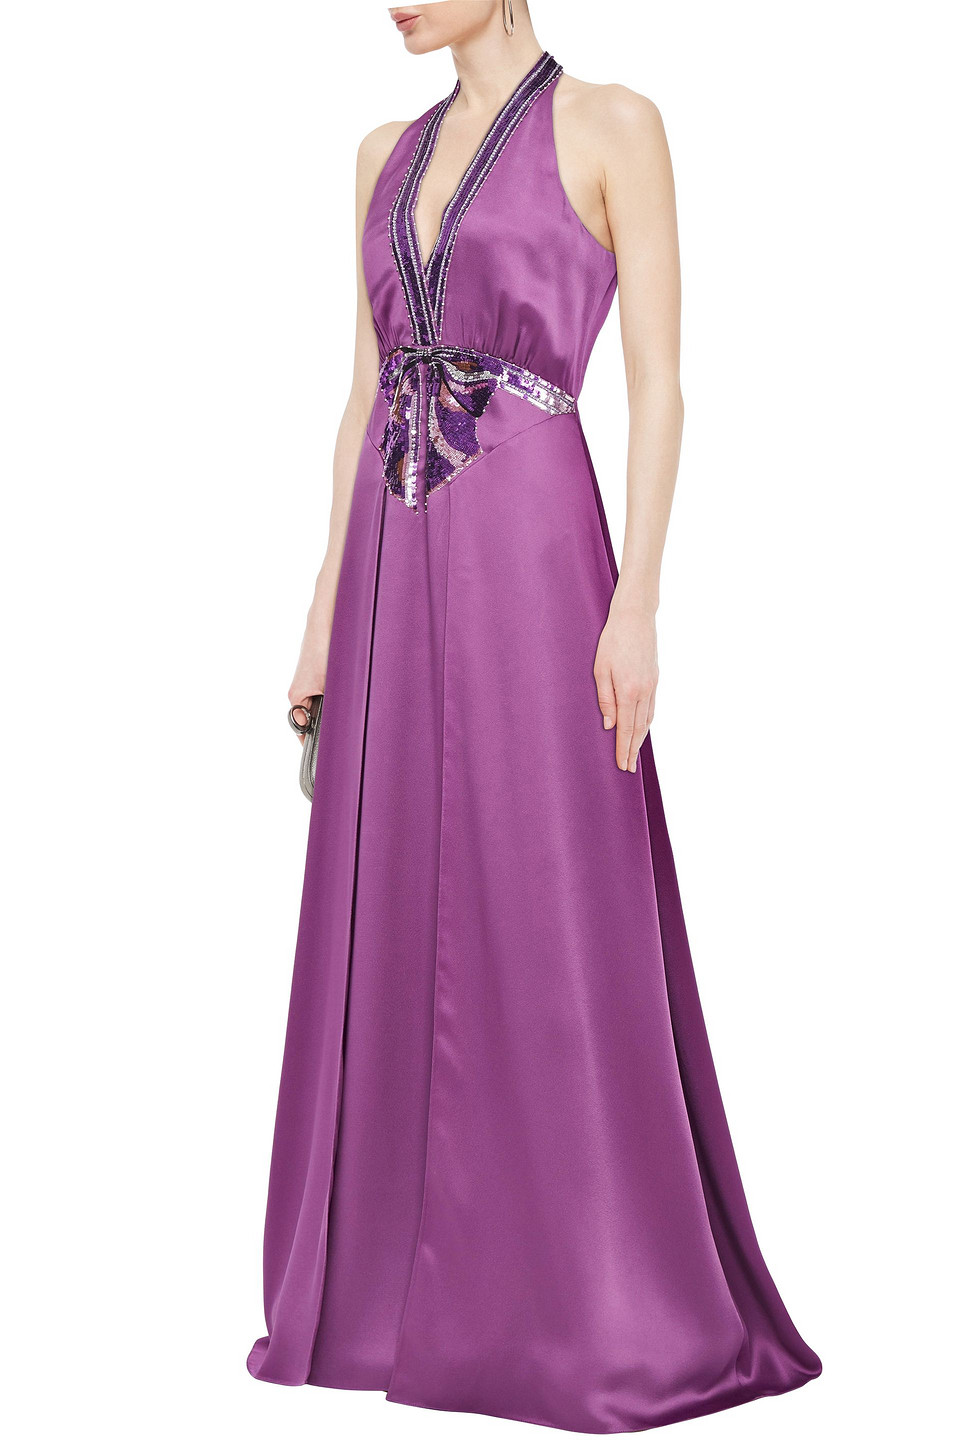 Temperley London | Temperley London Woman Embellished Satin-crepe Gown Violet | Clouty